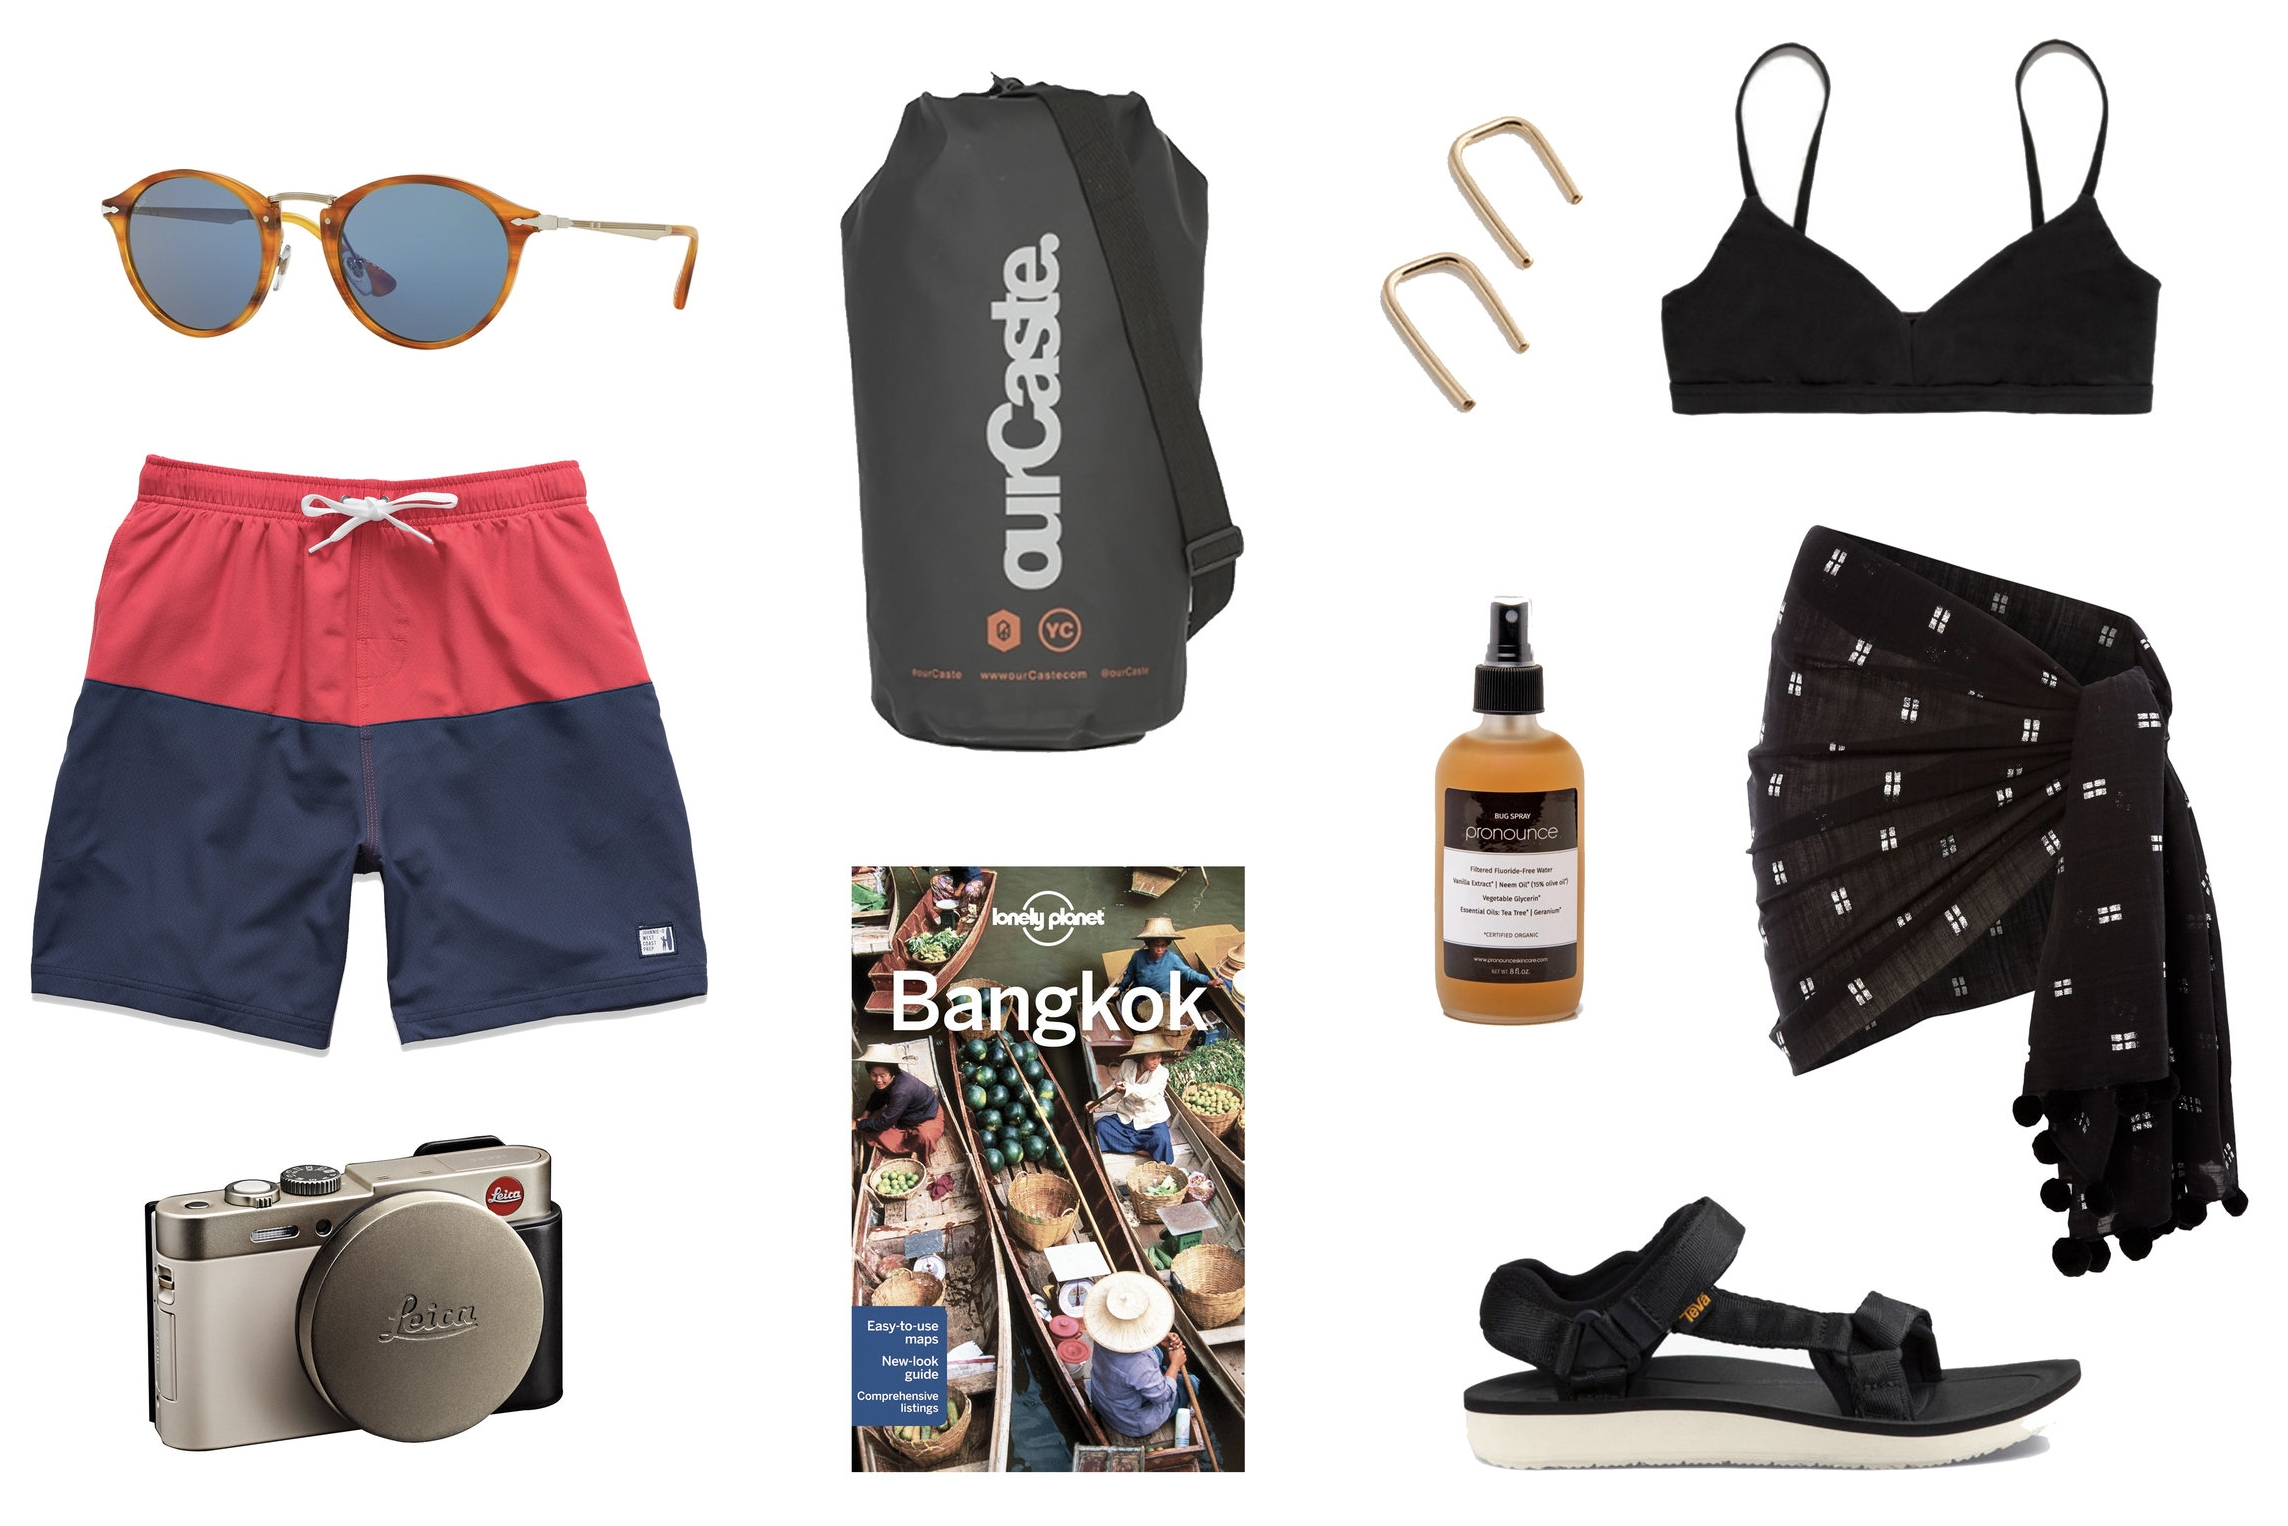 1)  Persol Calligrapher Edition Sunglasses  2)  ourCaste Dry Sack in Black  3)  Gold Horseshoe earrings  4)  Land of Women x The Dreslyn Classic Bikini Top in Black   5)  Johnnie-O Jackson Swim Trunks  6)  Pronounce Bug Spray  7)  Seafolly Metallic Jacquard Sarong  8)  Leica C Digital Camera in Light Gold  9)  Lonely Planet Bangkok Travel Guide  10)  Teva Original Universal Premier in Black